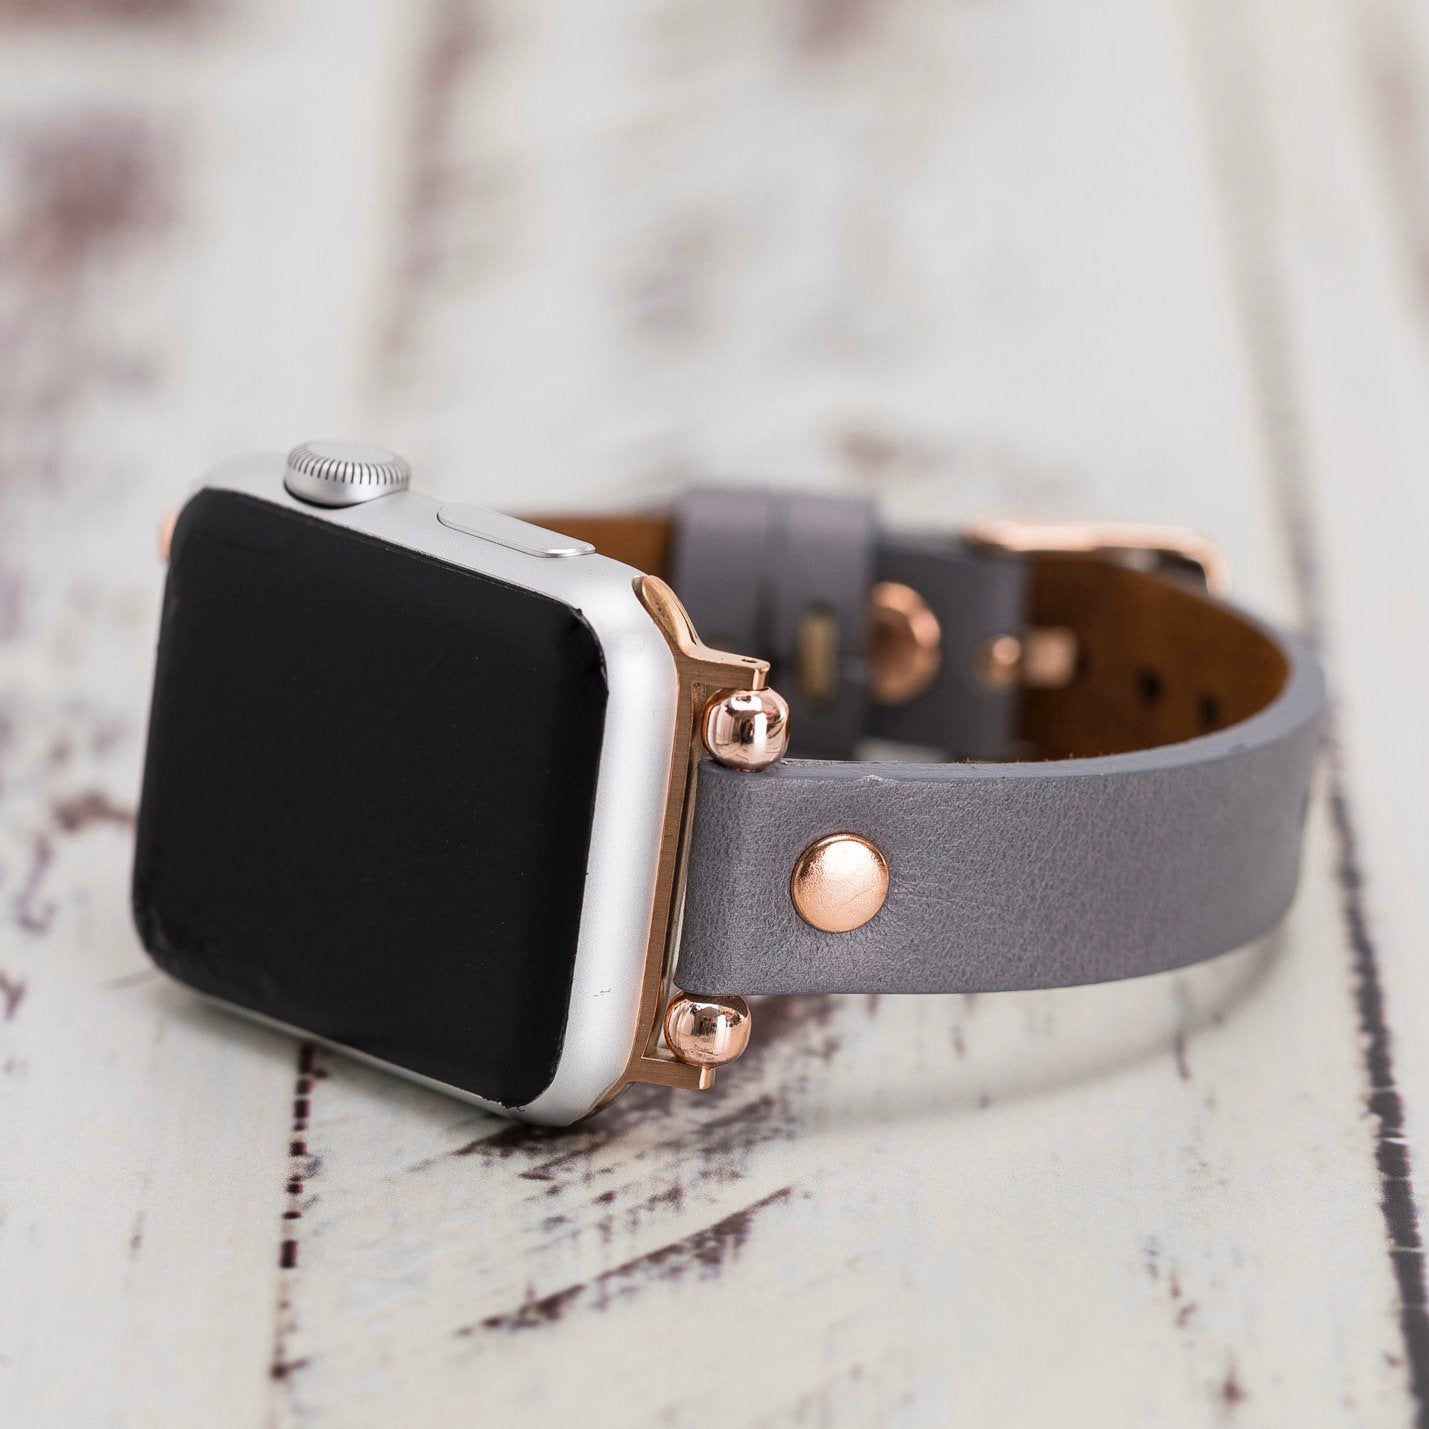 Apple Watch Band 42mm Leather Black